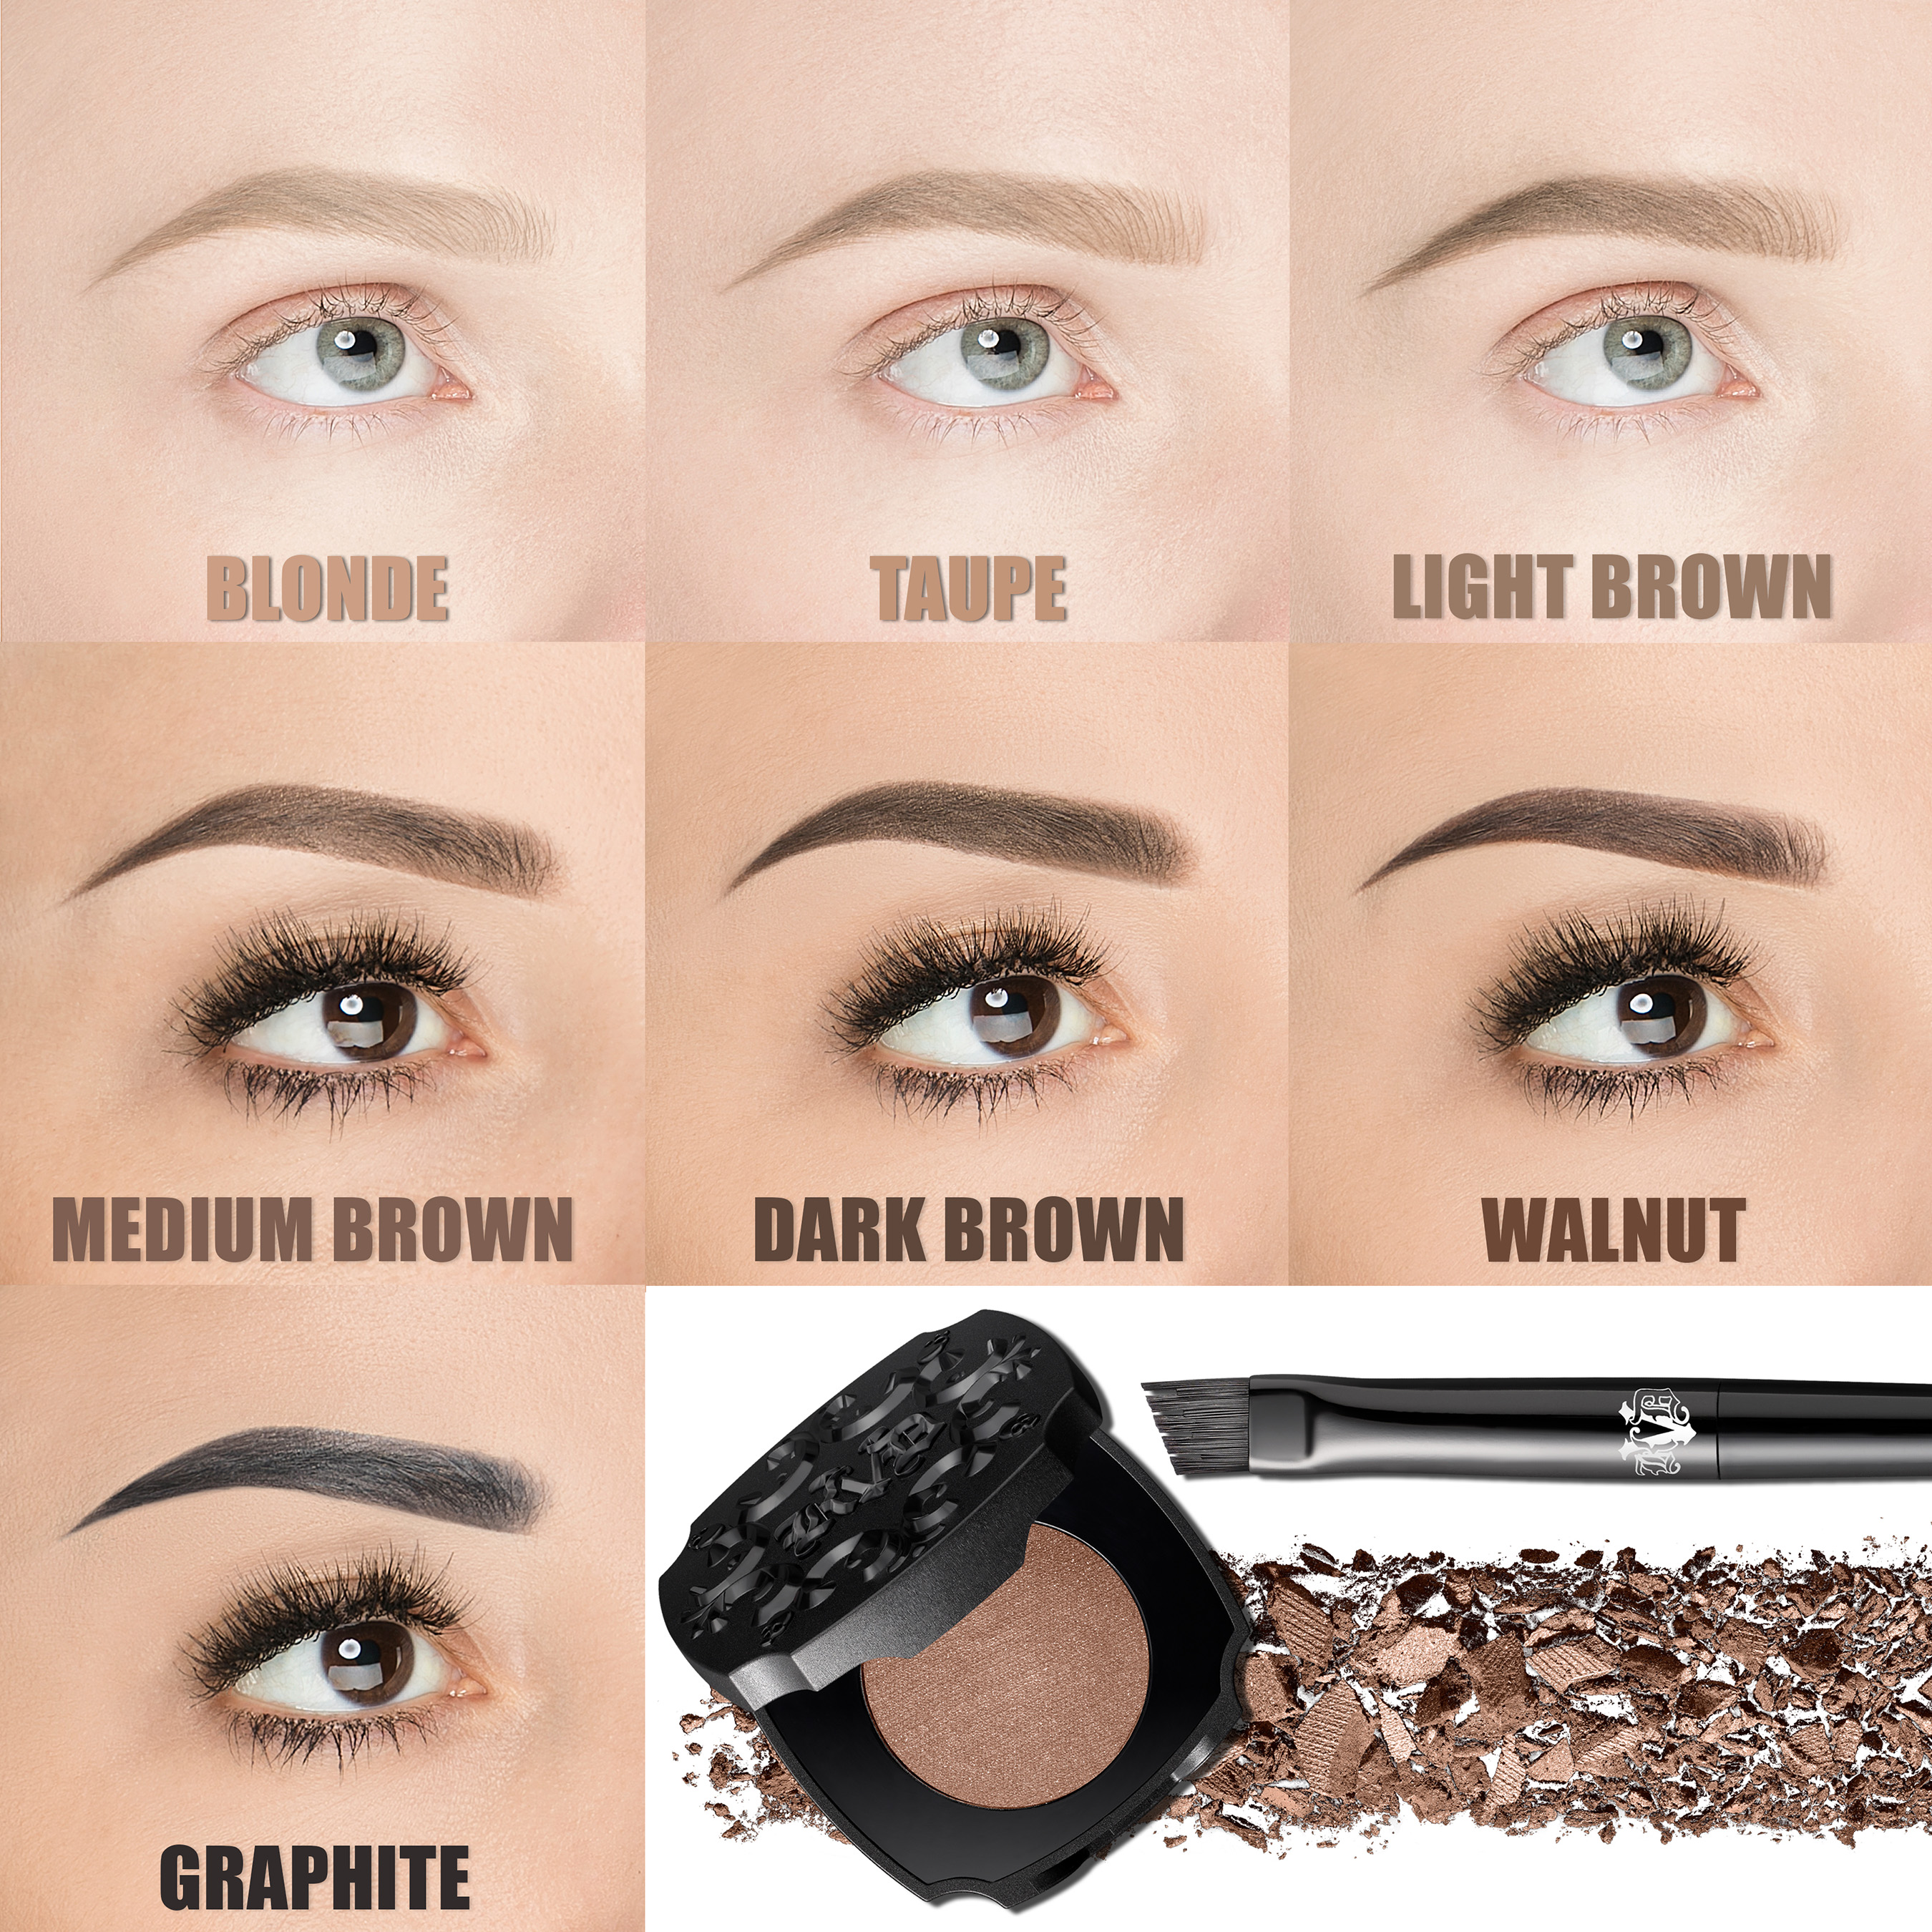 Kat Von D Beauty Is Dropping The Biggest Brow Collection Ever